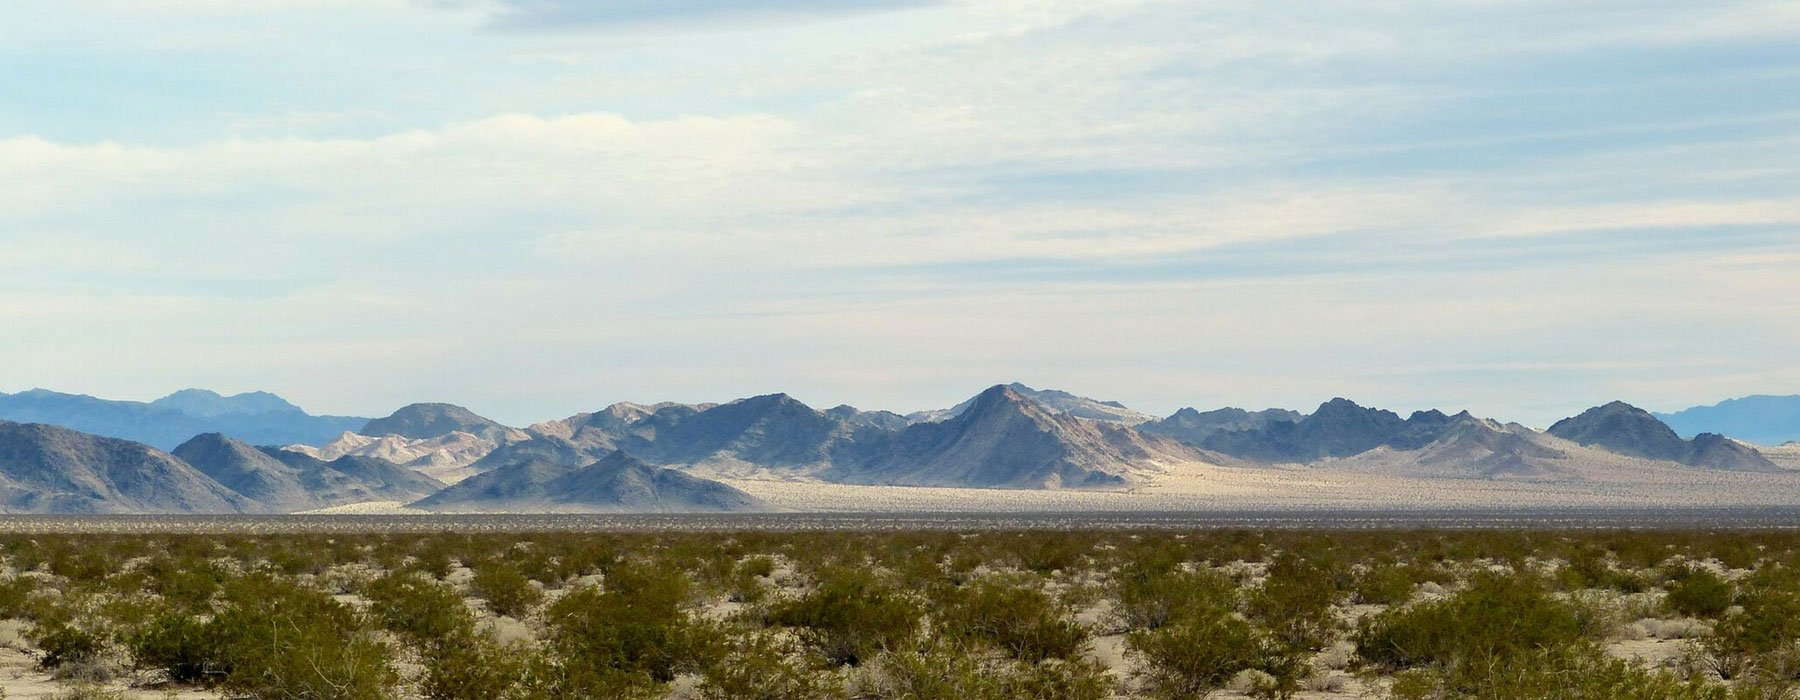 photo of a desert landscape